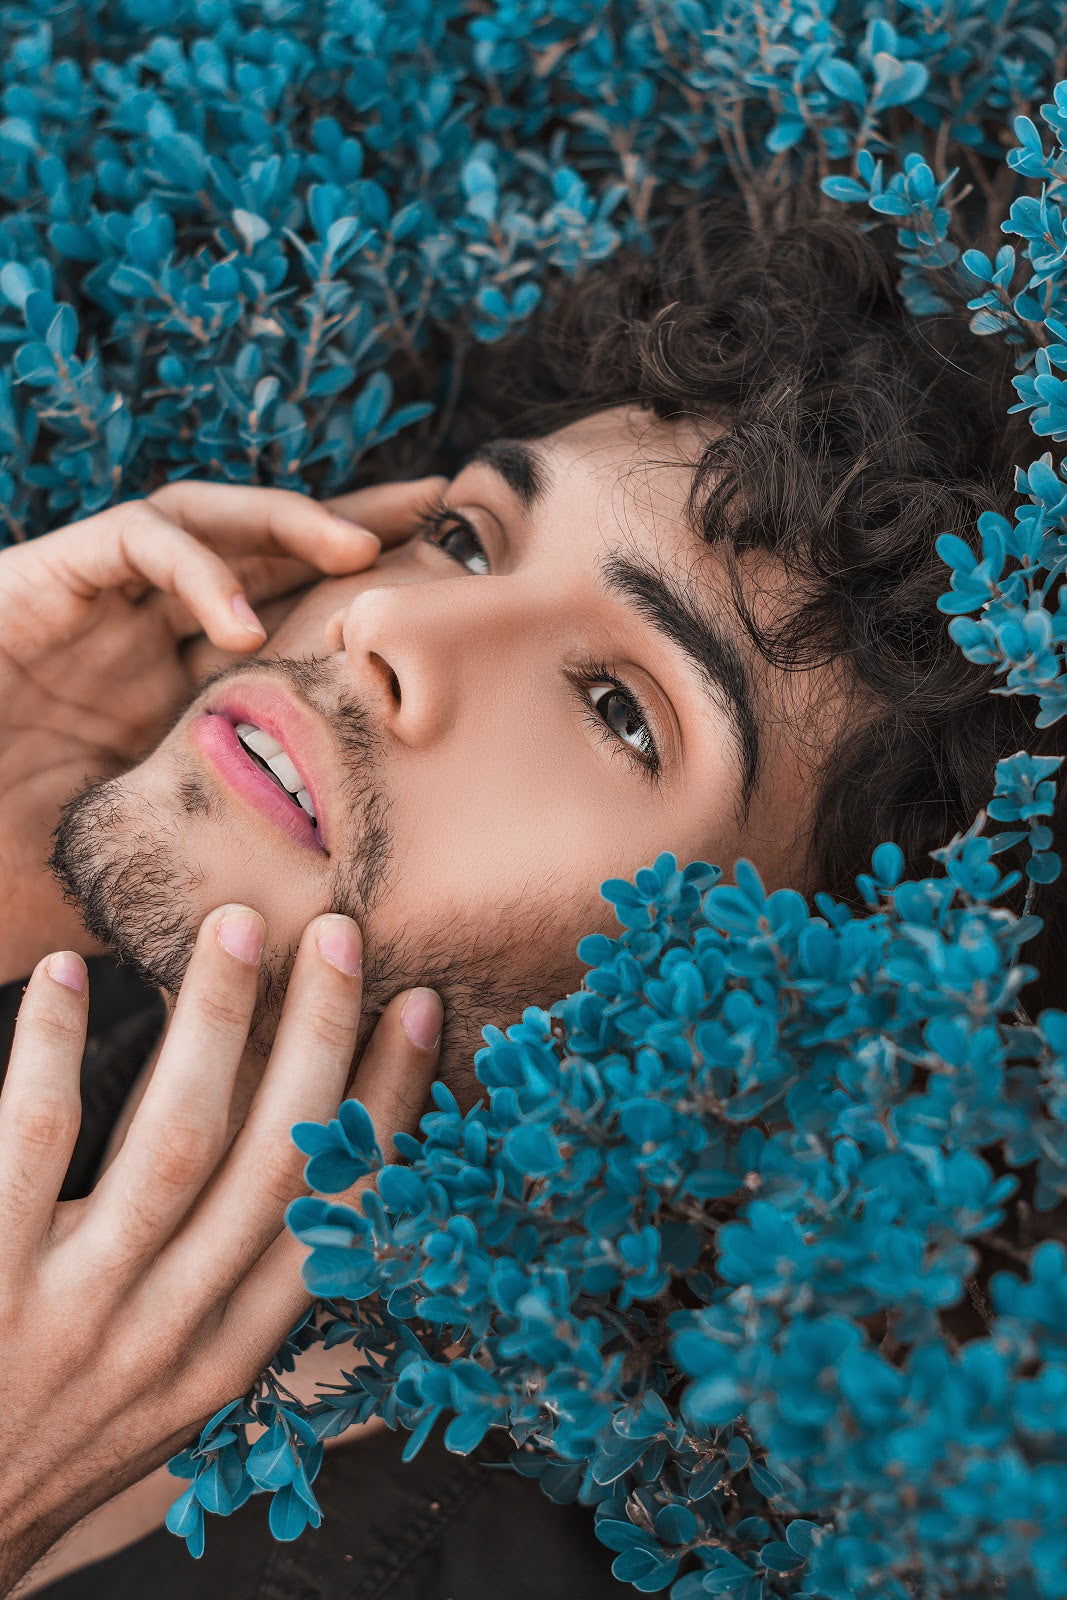 Man Touching Face Surrounded by Blue Foliage | Style Standard